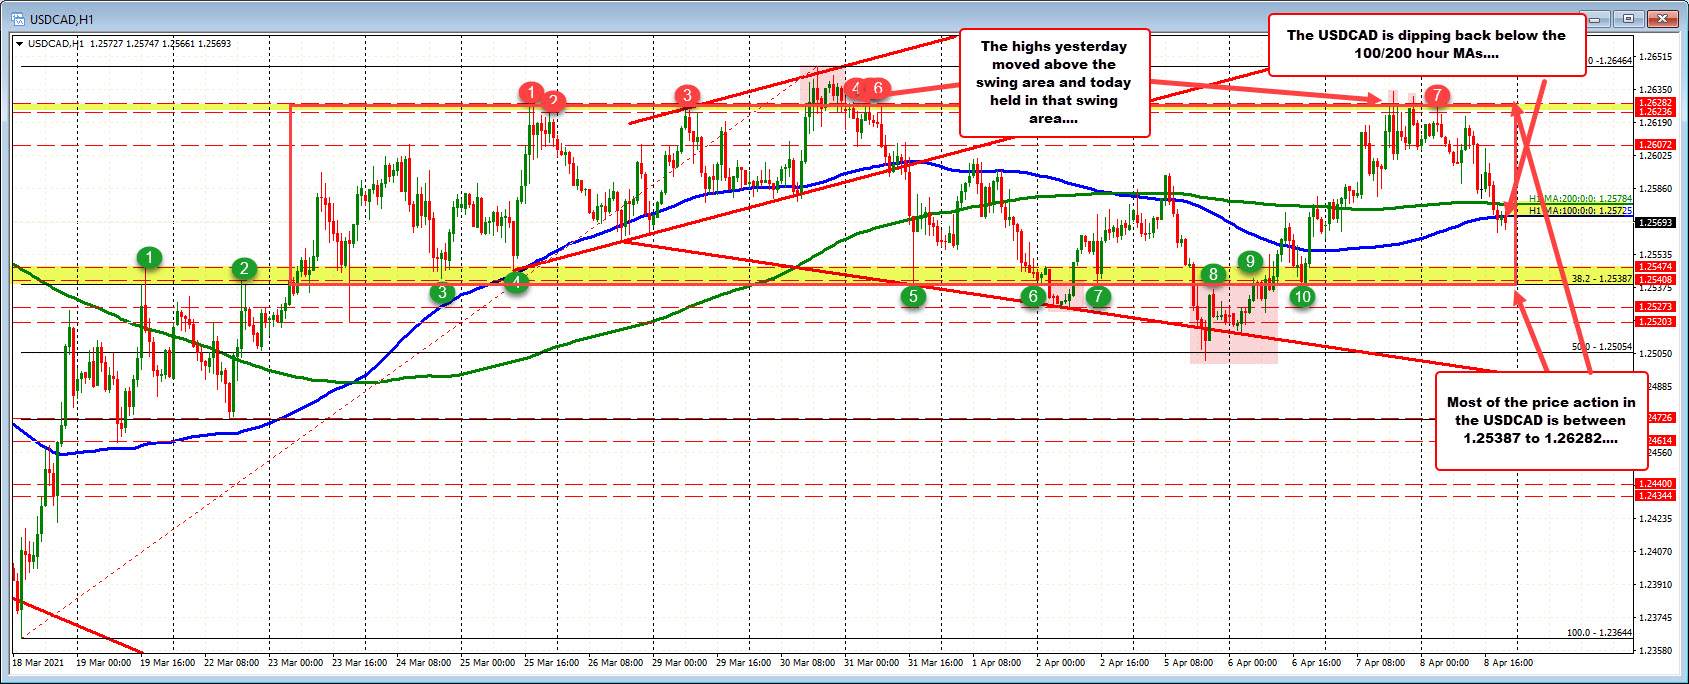 Most of the price action in the USDCAD between 1.25387 to 1.26282